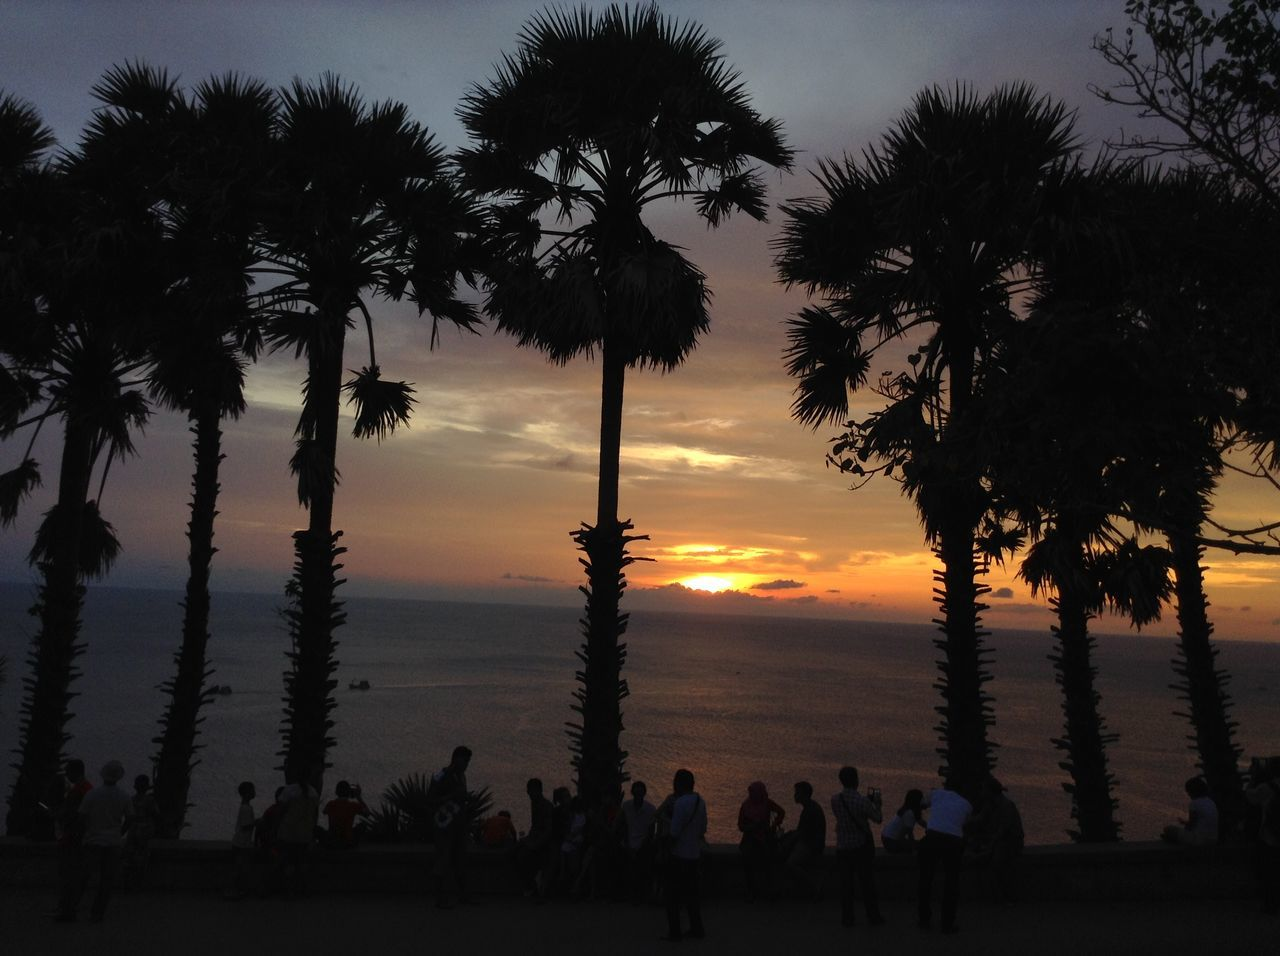 tree, palm tree, sunset, silhouette, nature, sky, beauty in nature, tree trunk, scenics, cloud - sky, growth, tranquility, lifestyles, outdoors, travel destinations, men, large group of people, real people, day, people